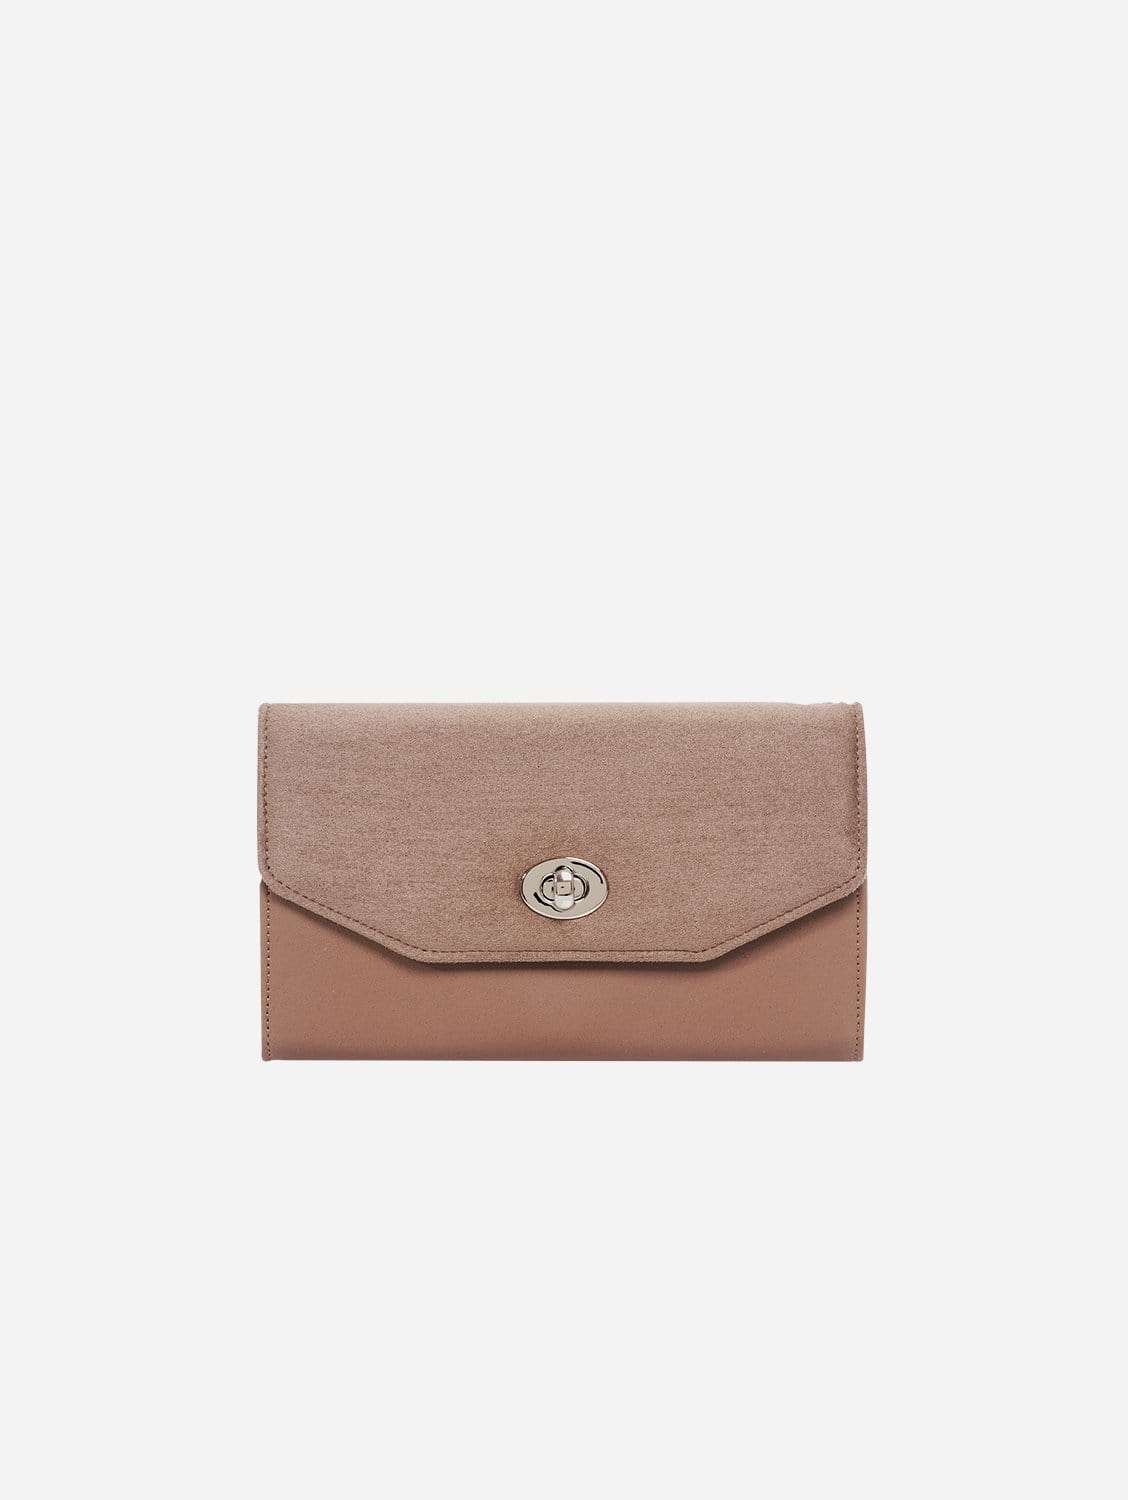 Piaf Oxymore Vegan Leather & Microsuede Clutch Bag | Taupe